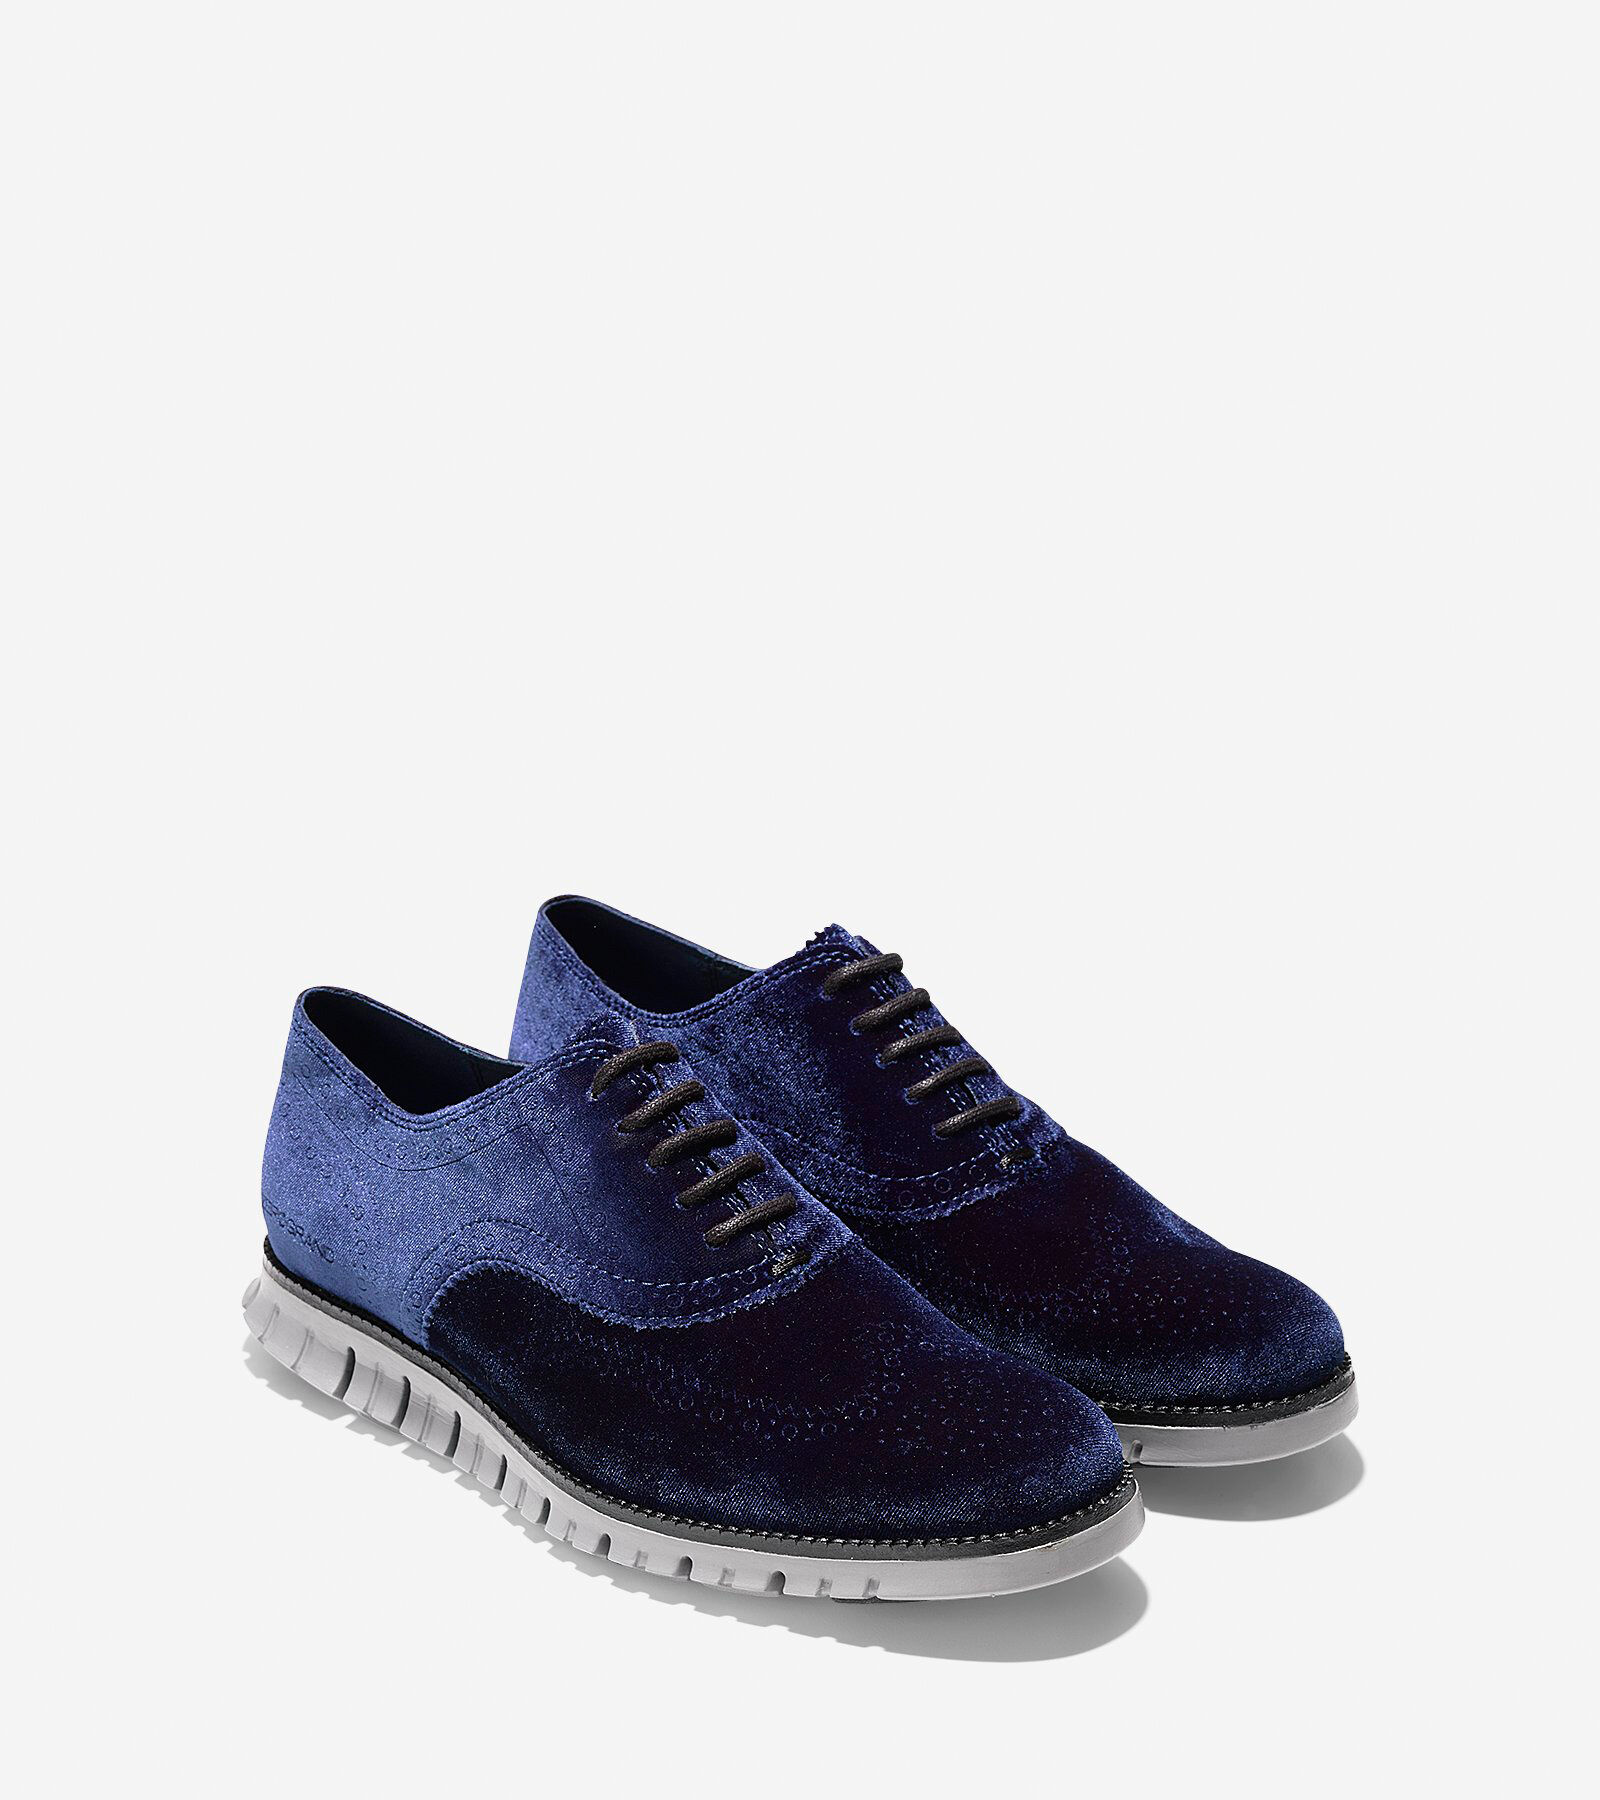 cole haan shoes bangalore weather tomorrow 718012